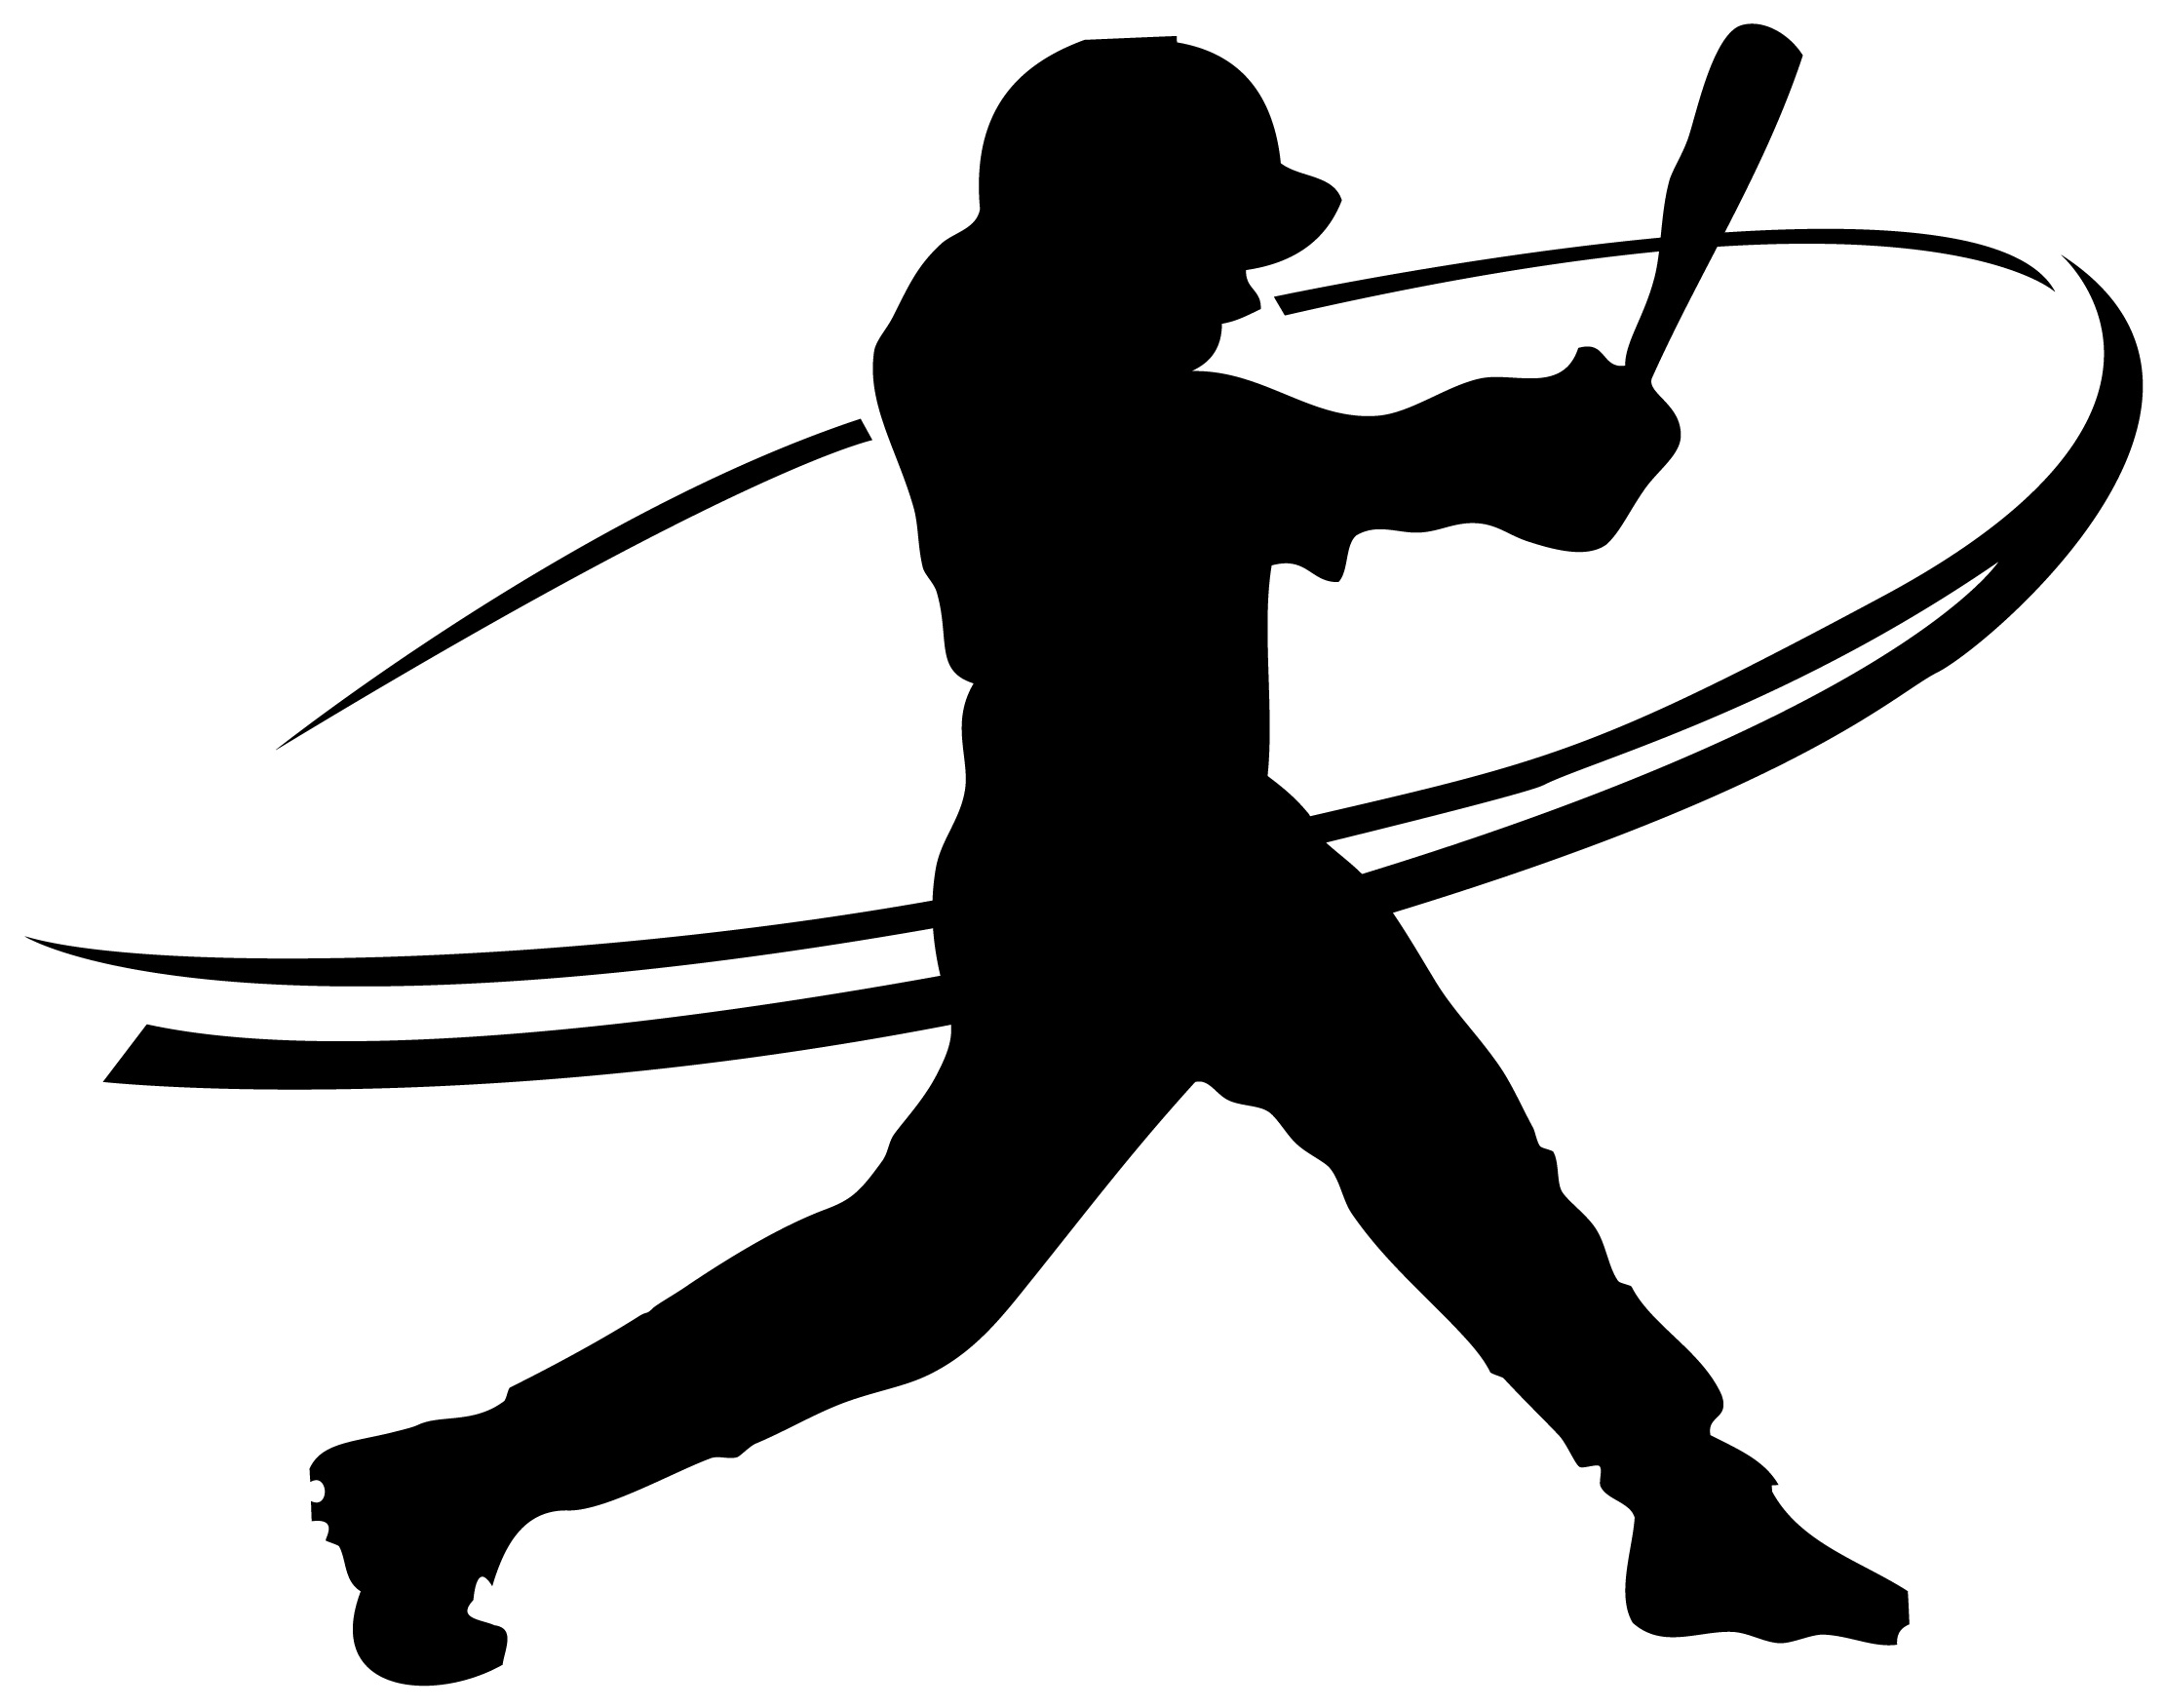 Free Baseball Hitter Silhouette, Download Free Clip Art.